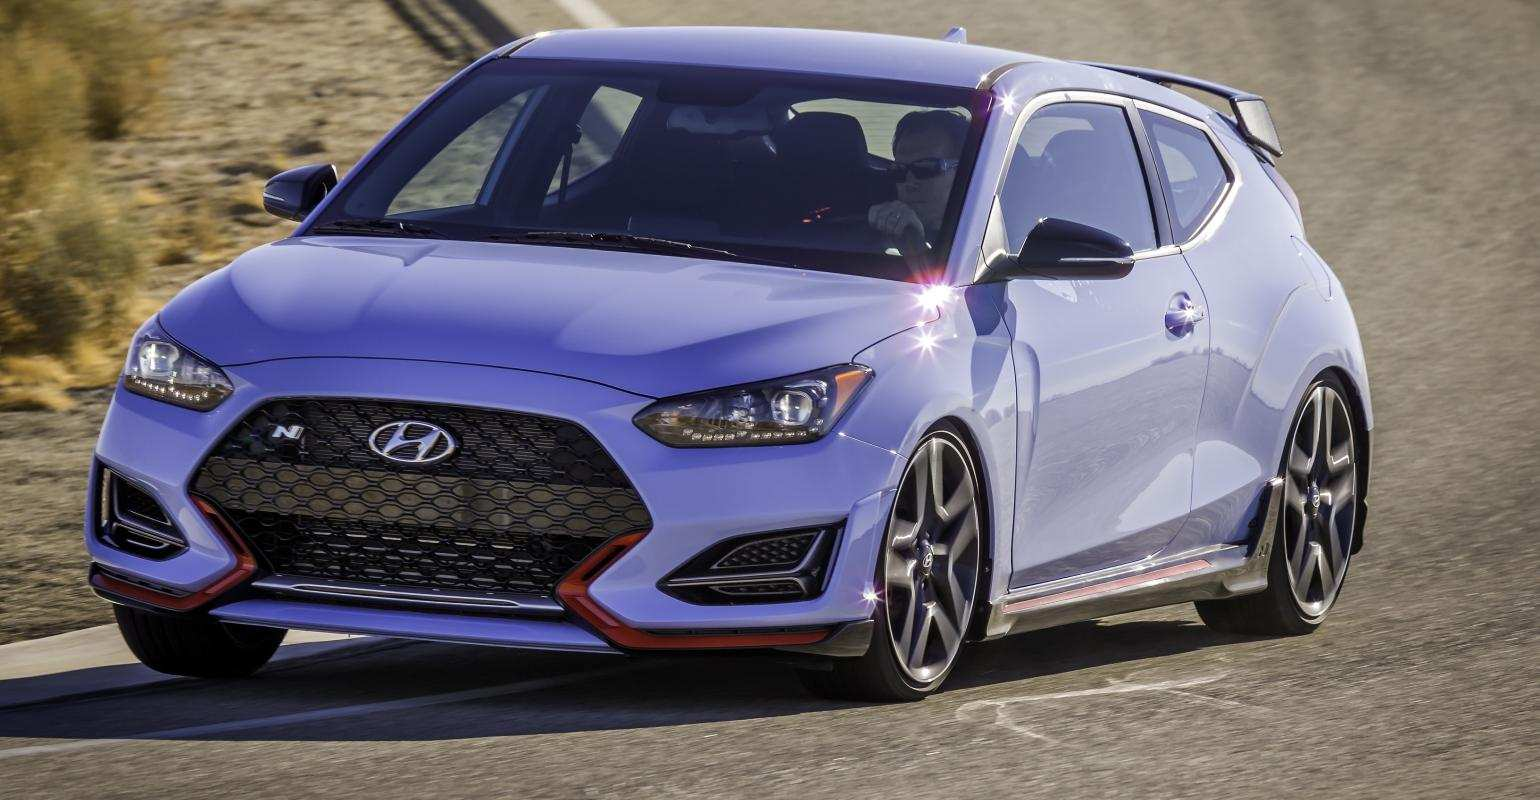 88 Gallery of 2019 Hyundai Veloster N Images with 2019 Hyundai Veloster N